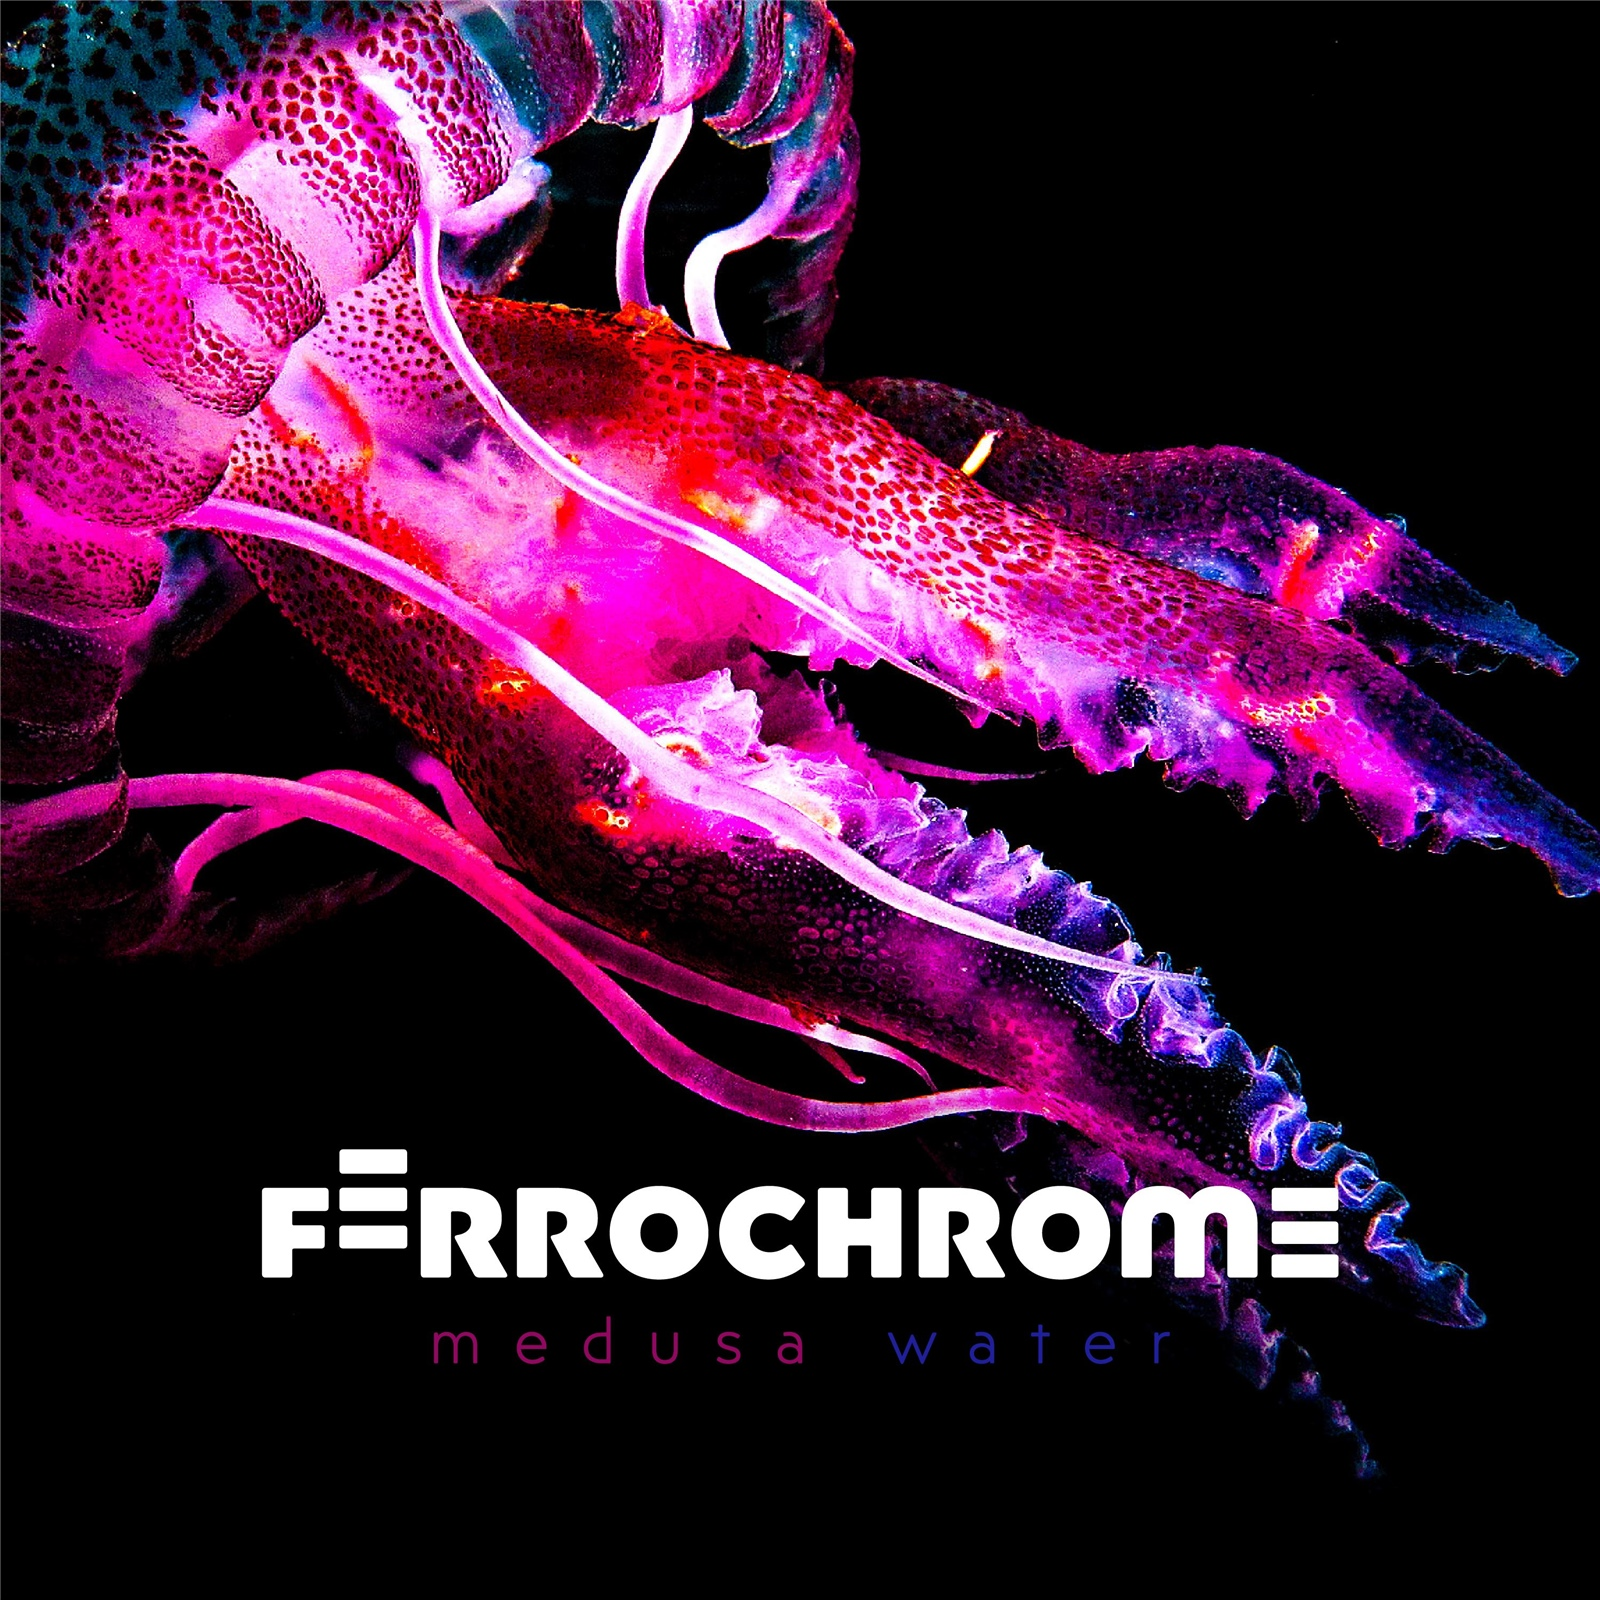 FERROCHROME Medusa Water CD 2017 (VÖ 04.08)